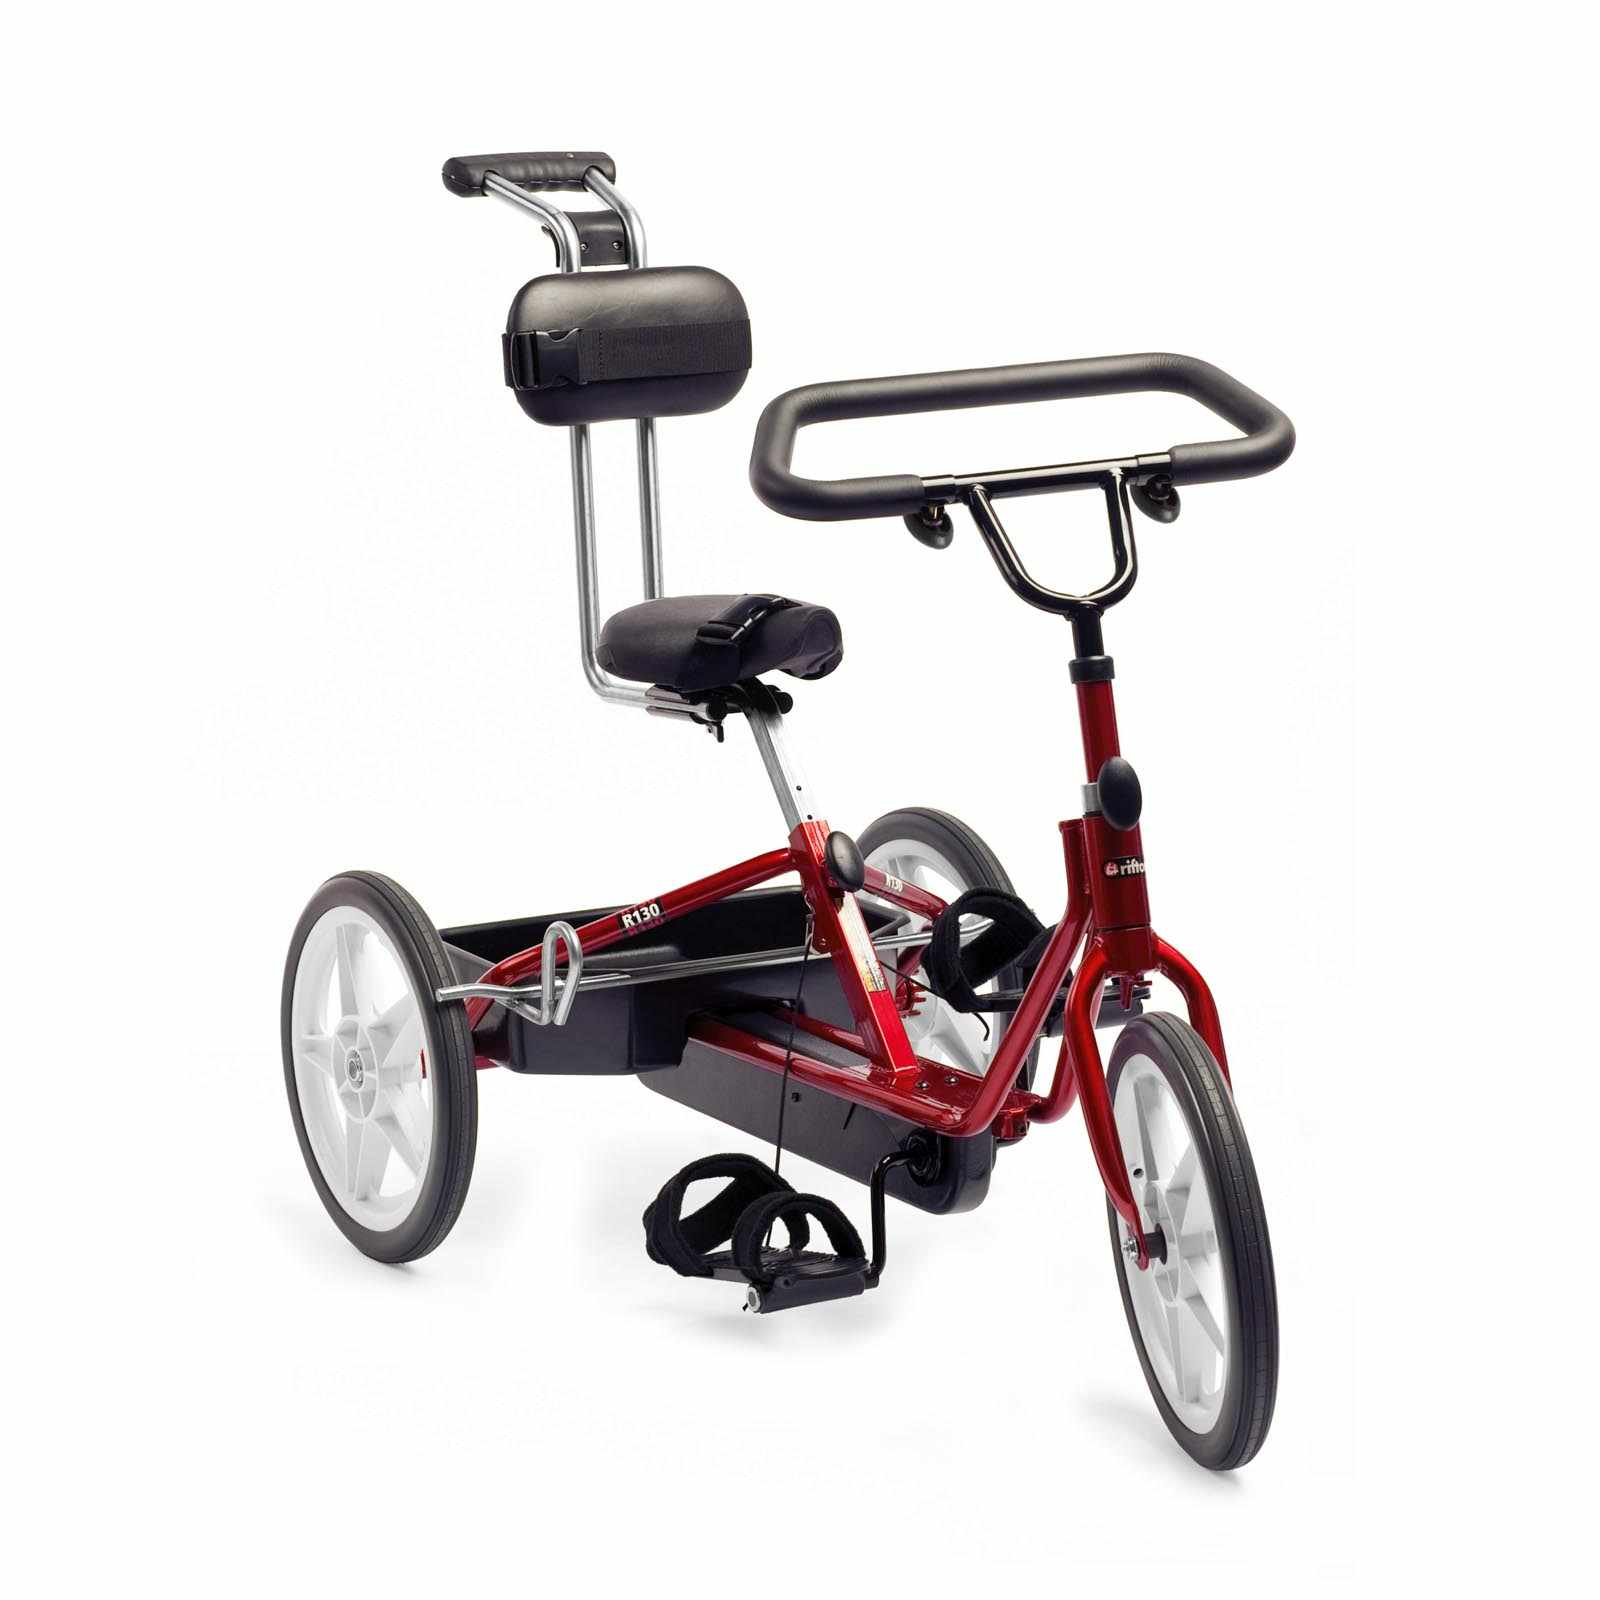 Rifton medium adaptive tricycle